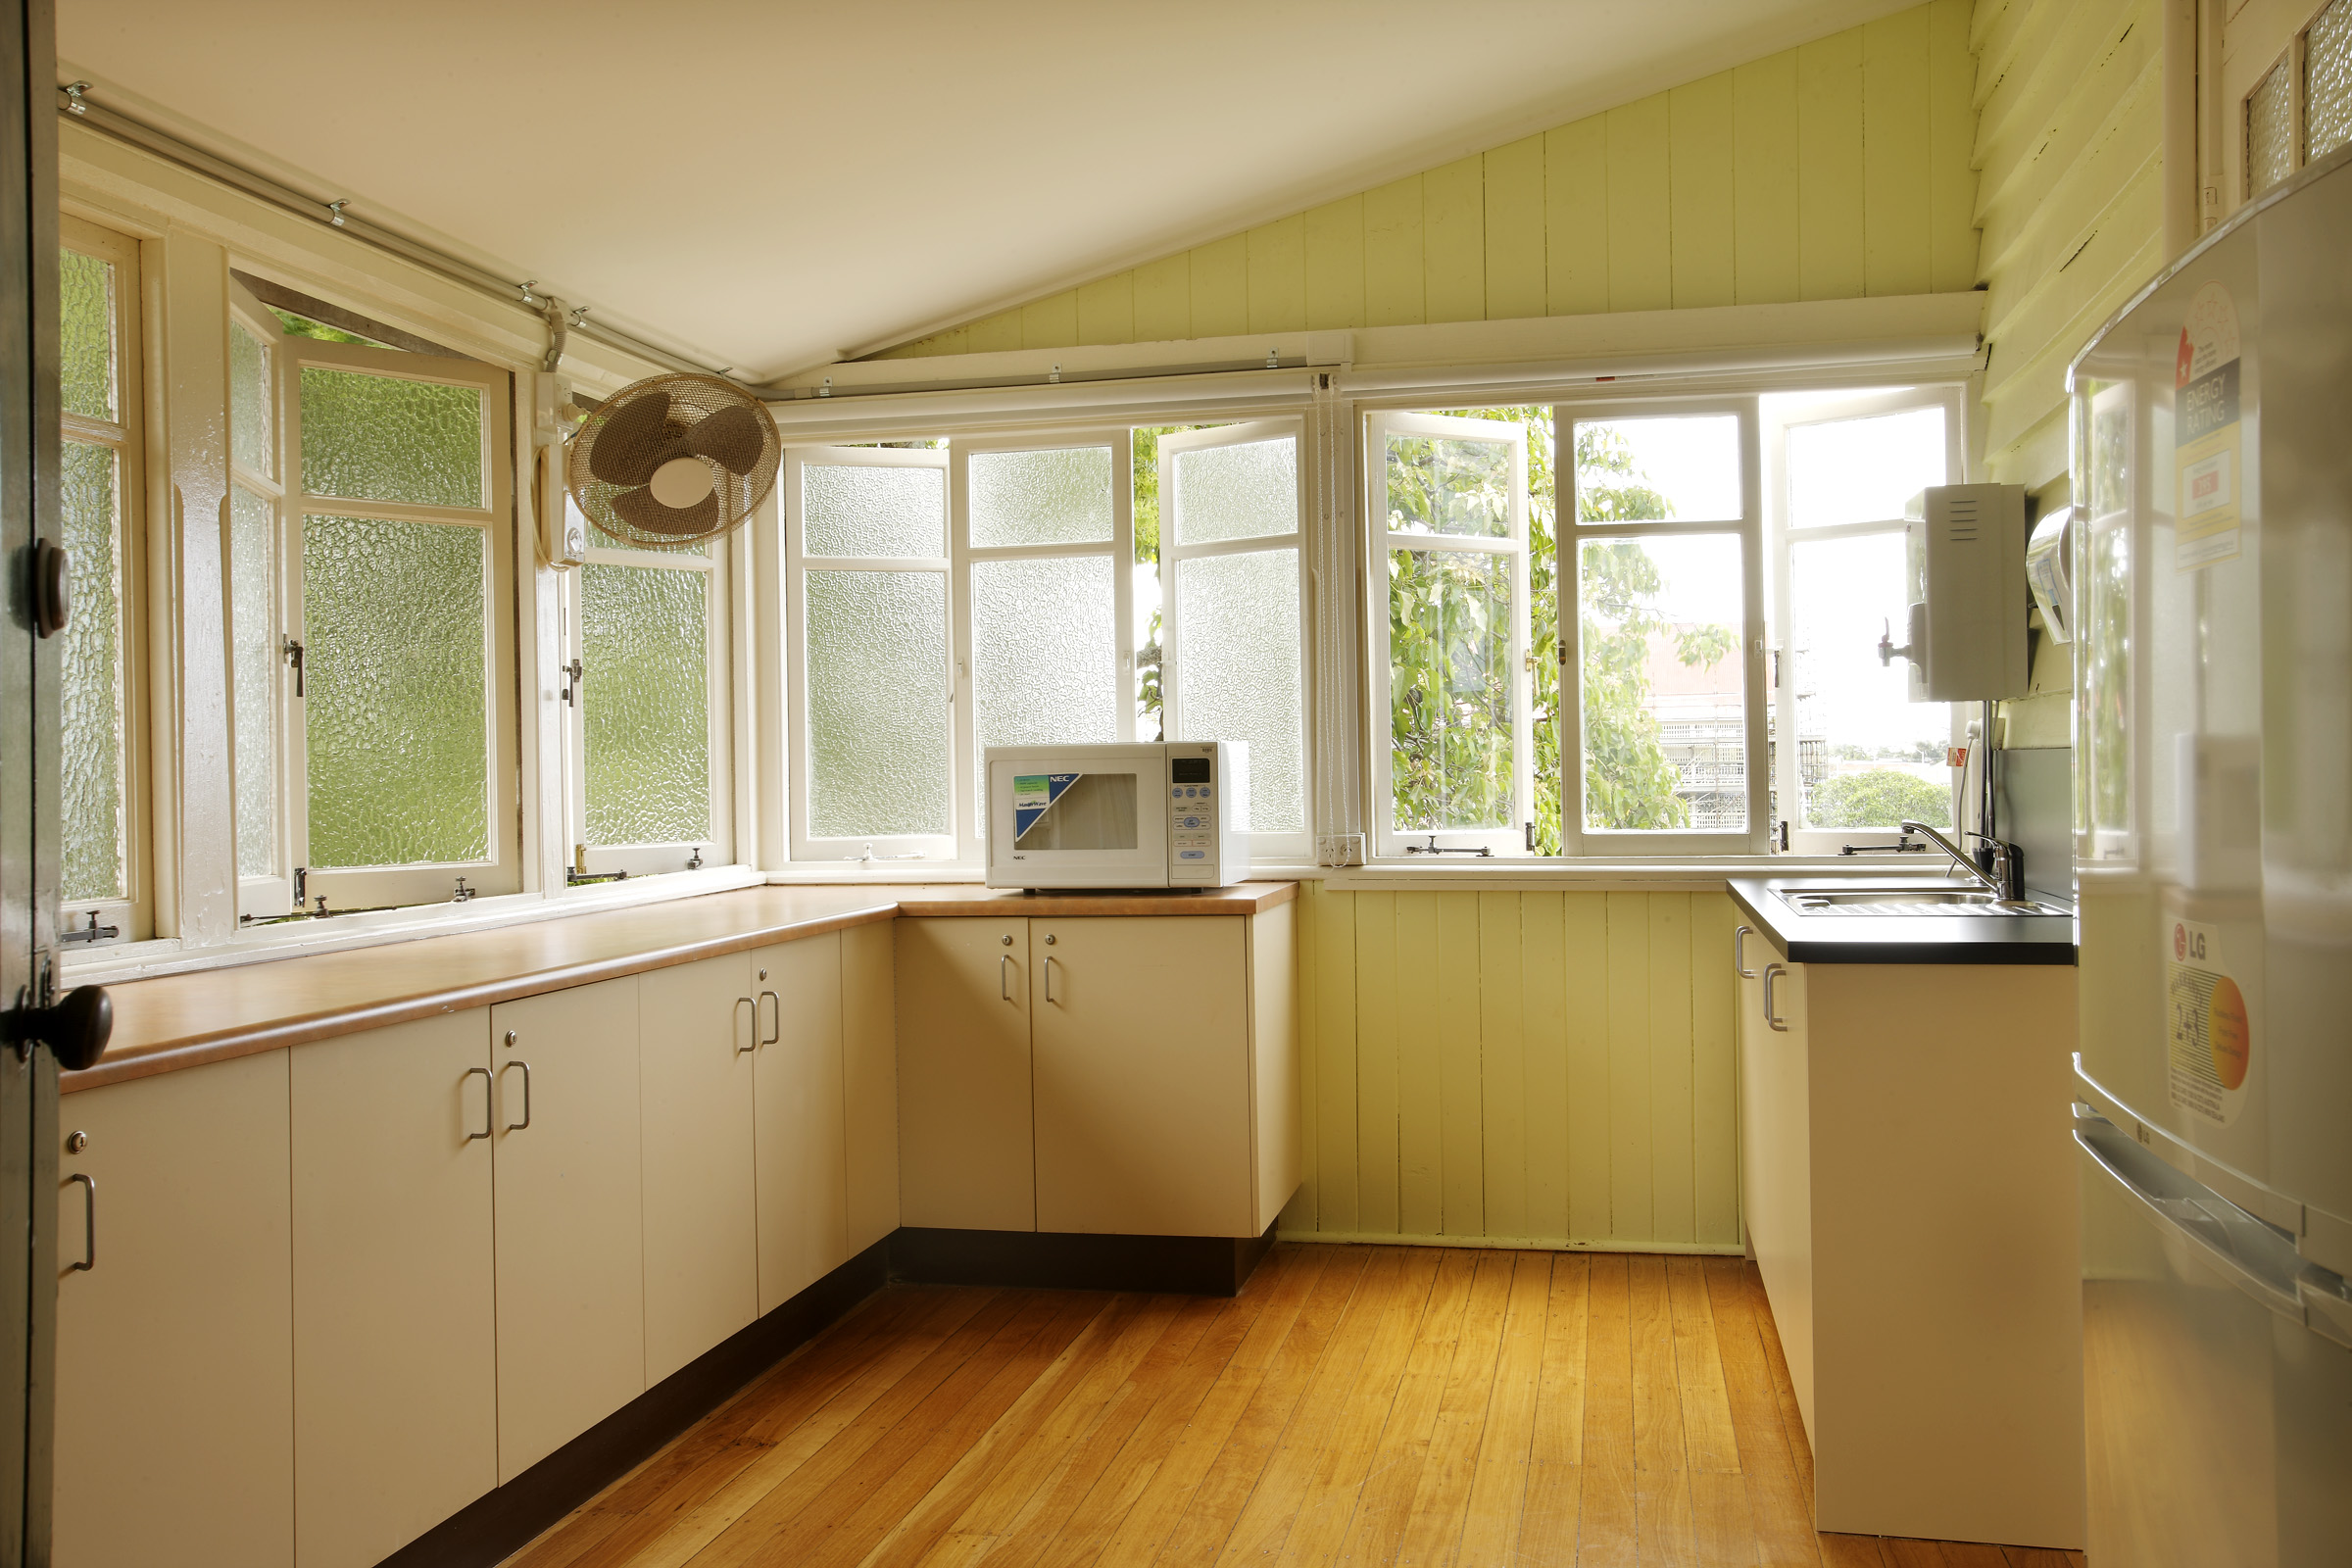 File:Wynnum Hall - small kitchen attached to the Lodge ...